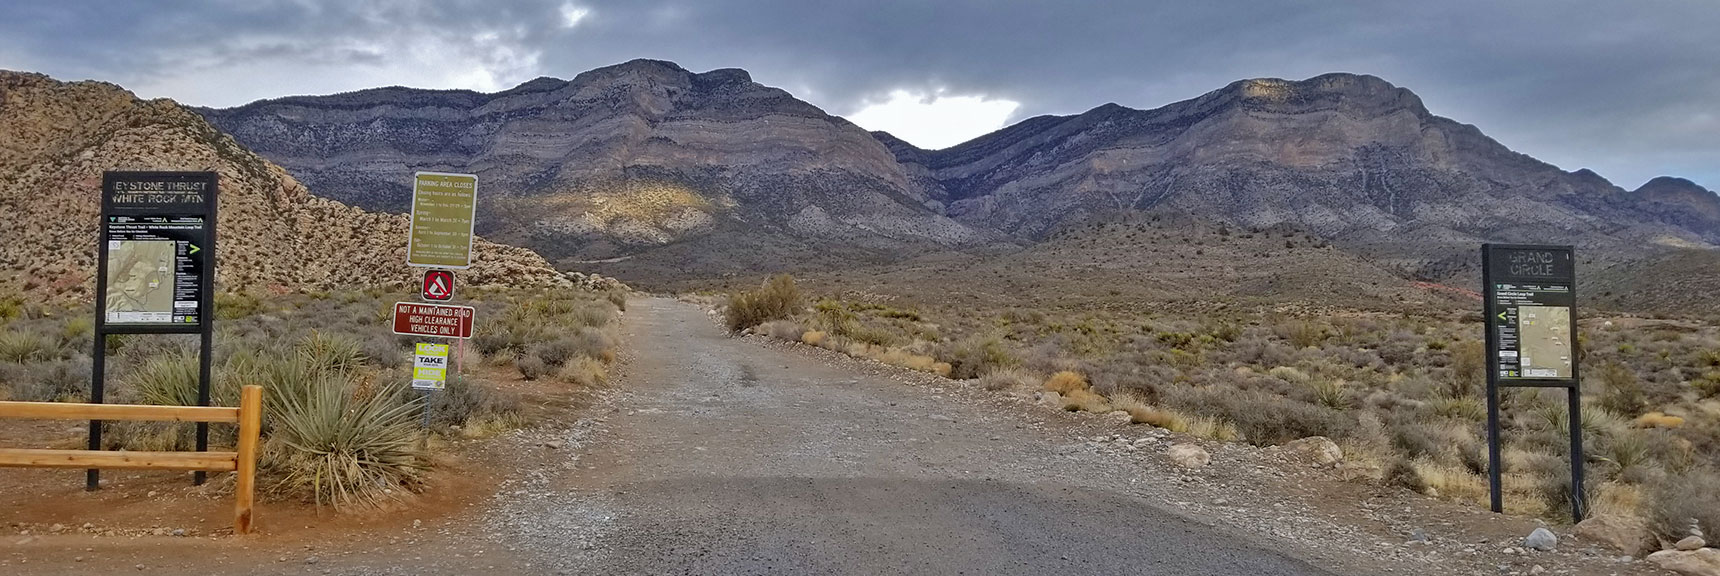 Trailhead at White Rock Mountain Loop in Red Rock Park, Nevada